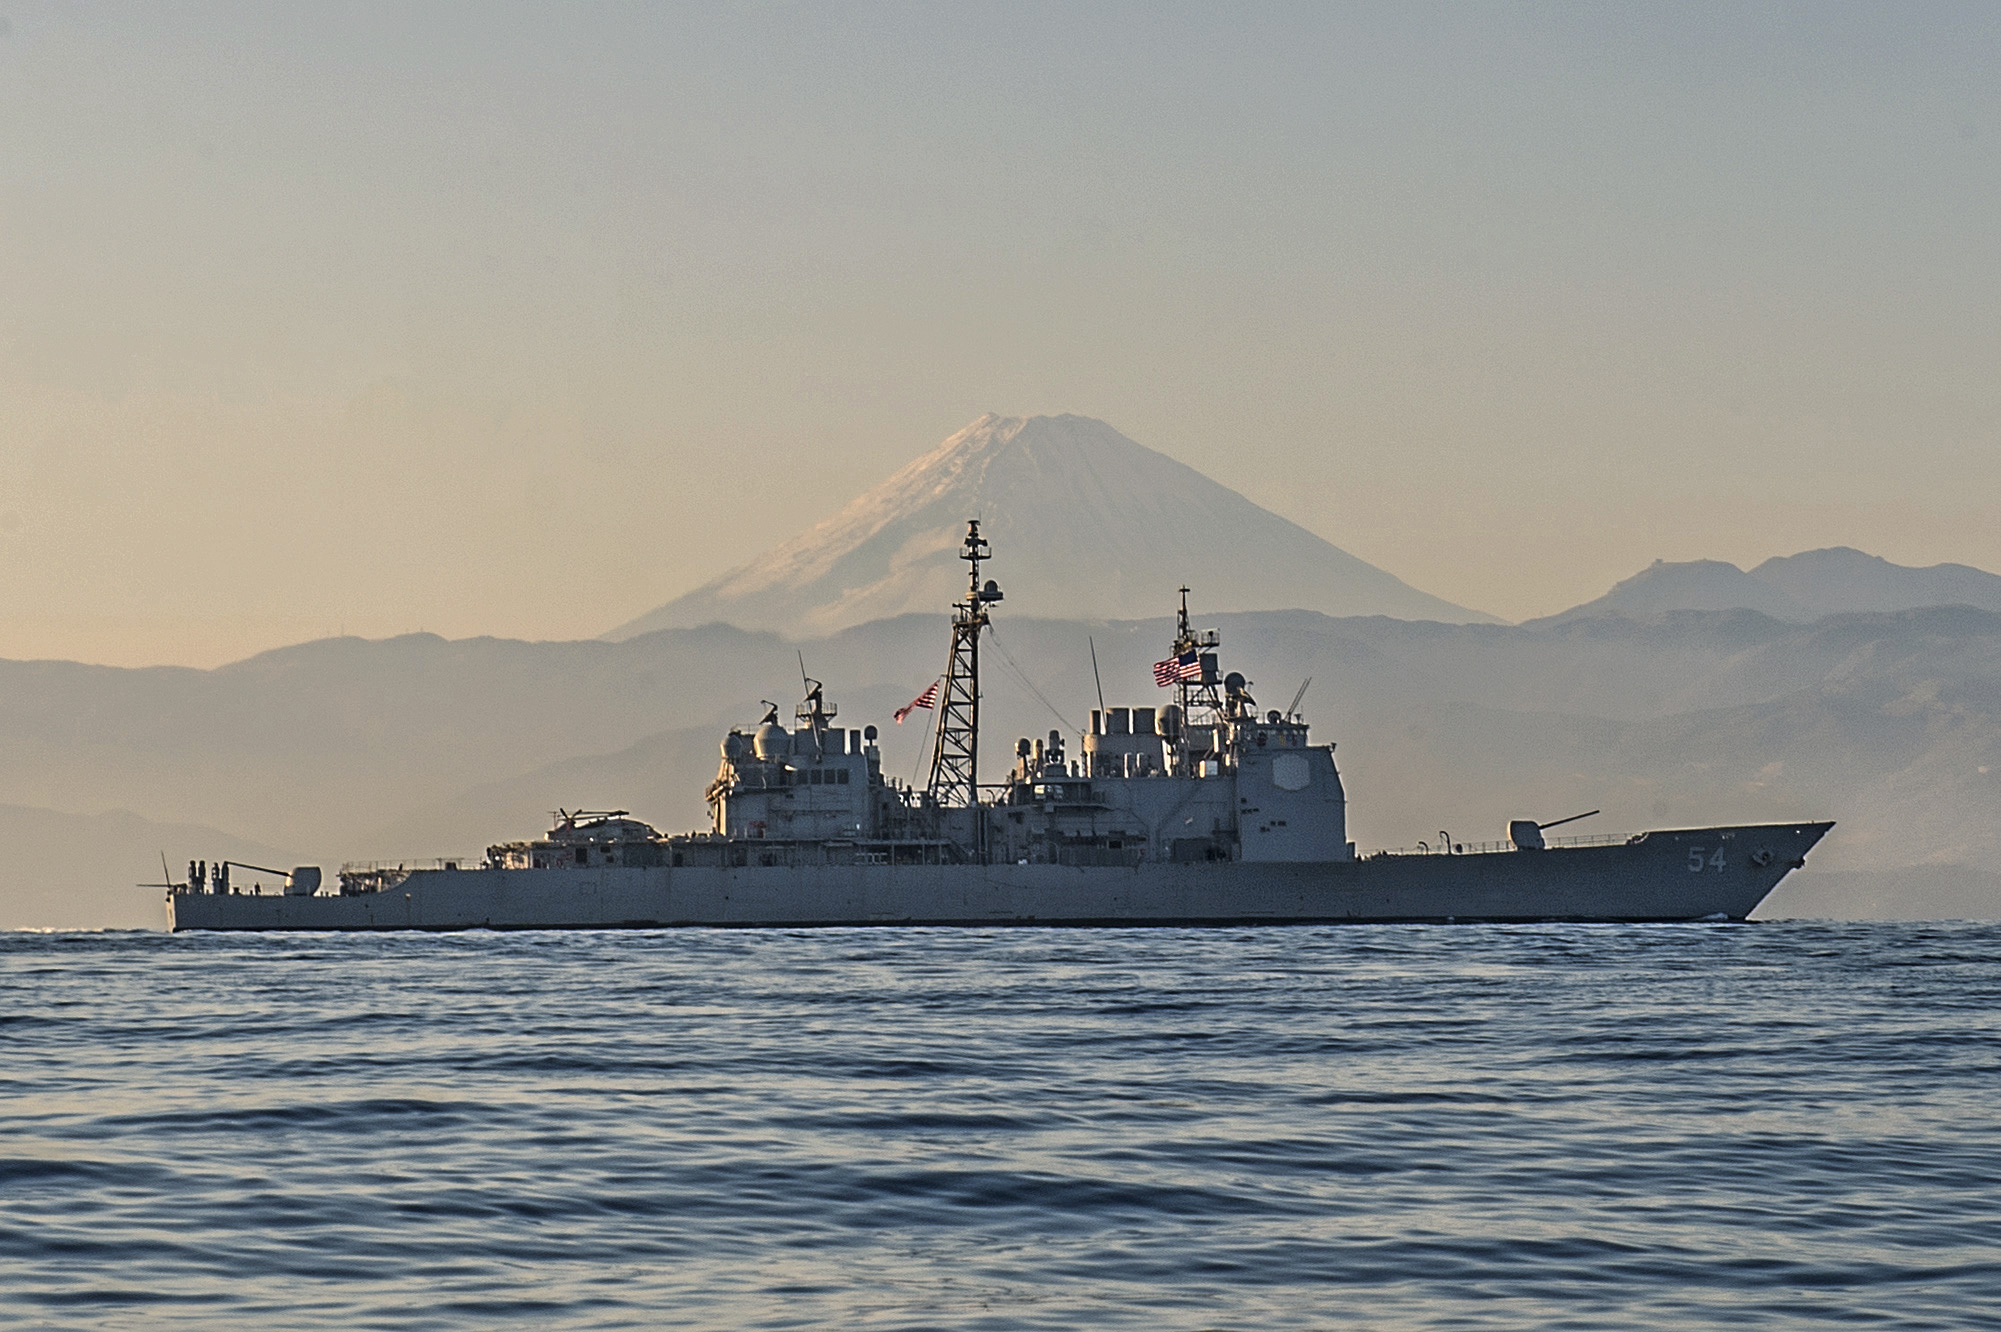 USS Antietam (CG-54) is underway off the coast of Japan near Mt. Fuji. US Navy Photo